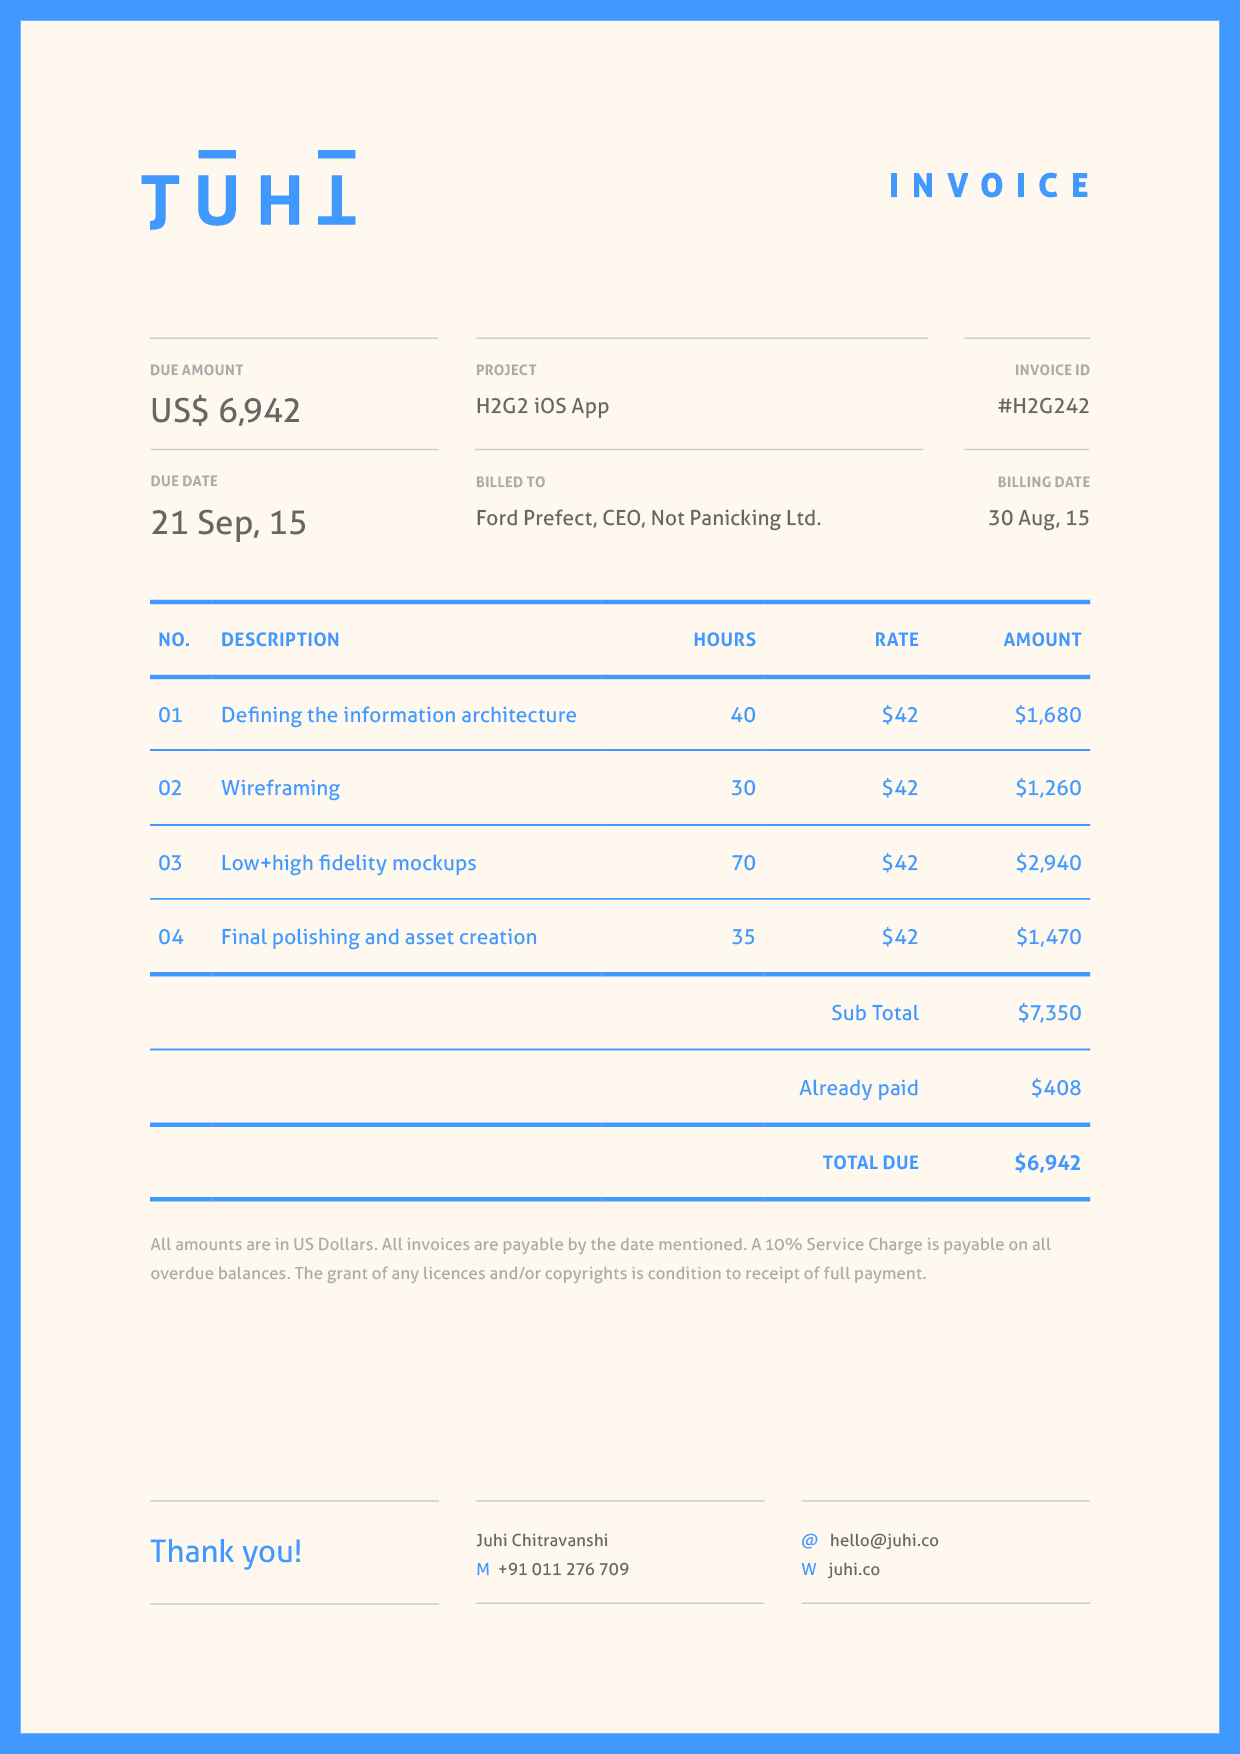 Darkfaderus  Fascinating Dont Hold Back On Your Invoice  Inspiring Designs  With Interesting Invoice By Juhi Chitravanshi Follow With Enchanting Invoice Due Also How To Get Invoice Price For New Car In Addition Template Invoice Excel And Invoice Dispute As Well As Online Invoices Template Free Additionally  Chevy Suburban Invoice Price From Inspirationfeedcom With Darkfaderus  Interesting Dont Hold Back On Your Invoice  Inspiring Designs  With Enchanting Invoice By Juhi Chitravanshi Follow And Fascinating Invoice Due Also How To Get Invoice Price For New Car In Addition Template Invoice Excel From Inspirationfeedcom